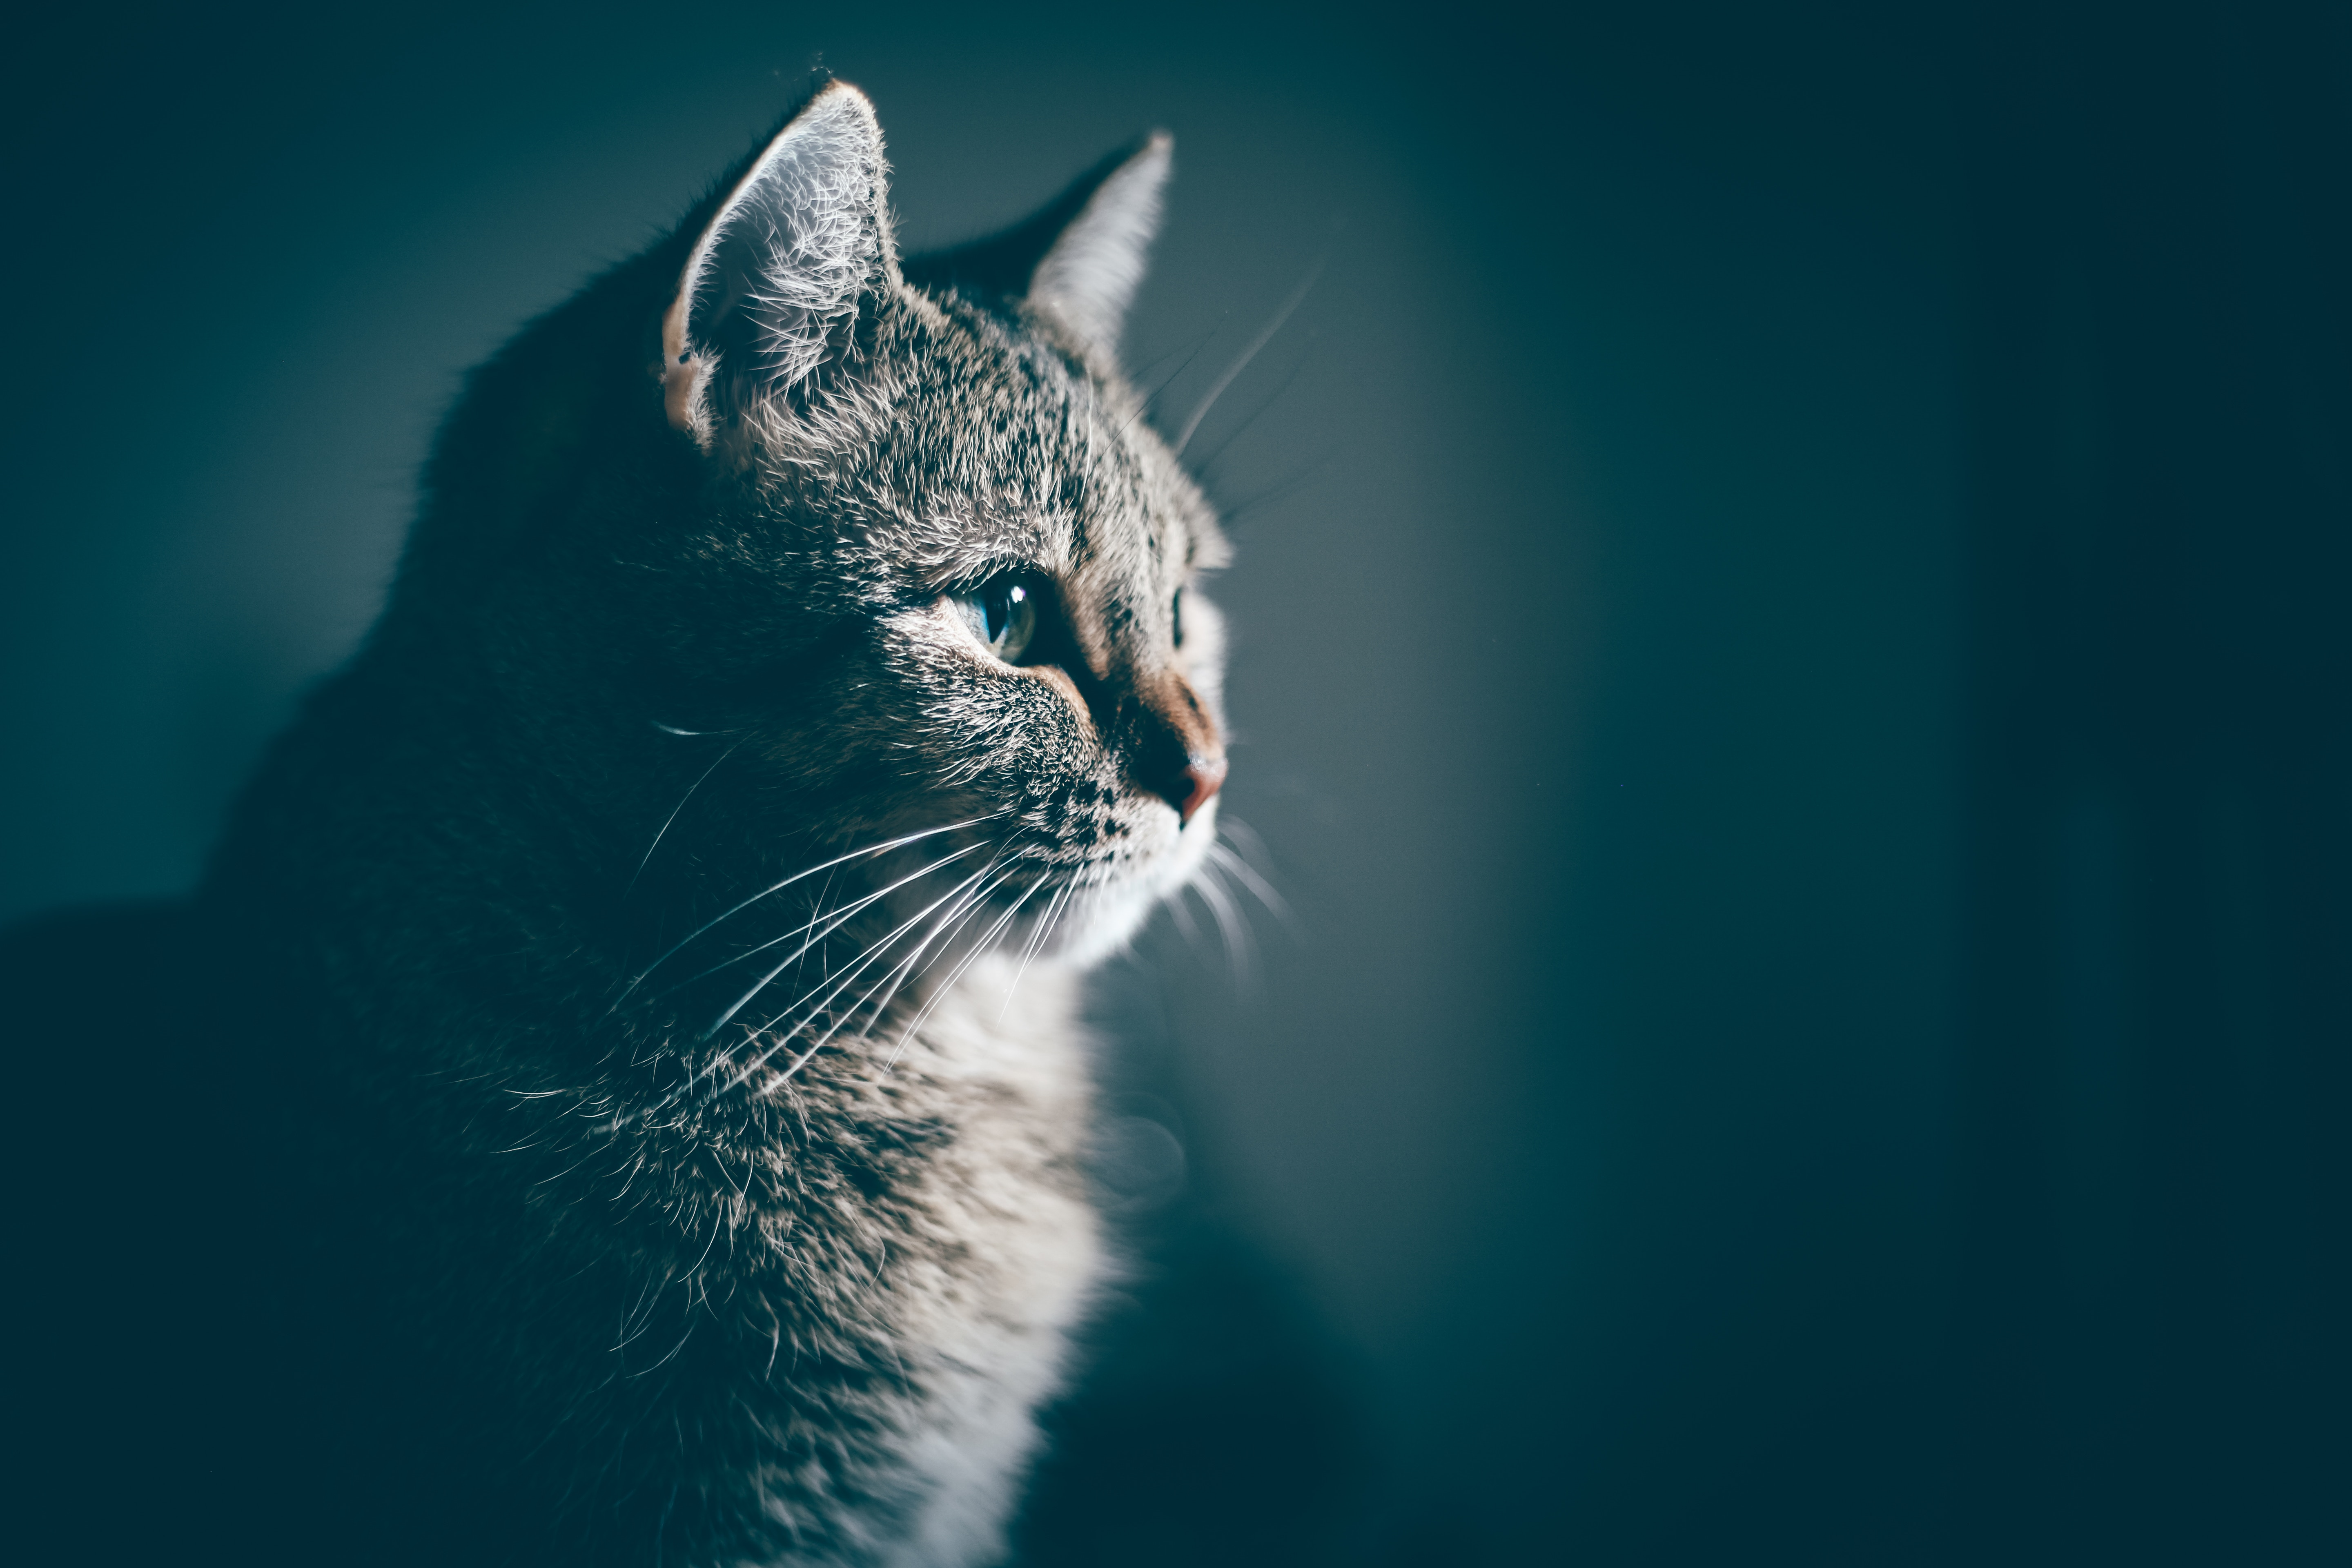 117322 download wallpaper Animals, Cat, Muzzle, Profile screensavers and pictures for free